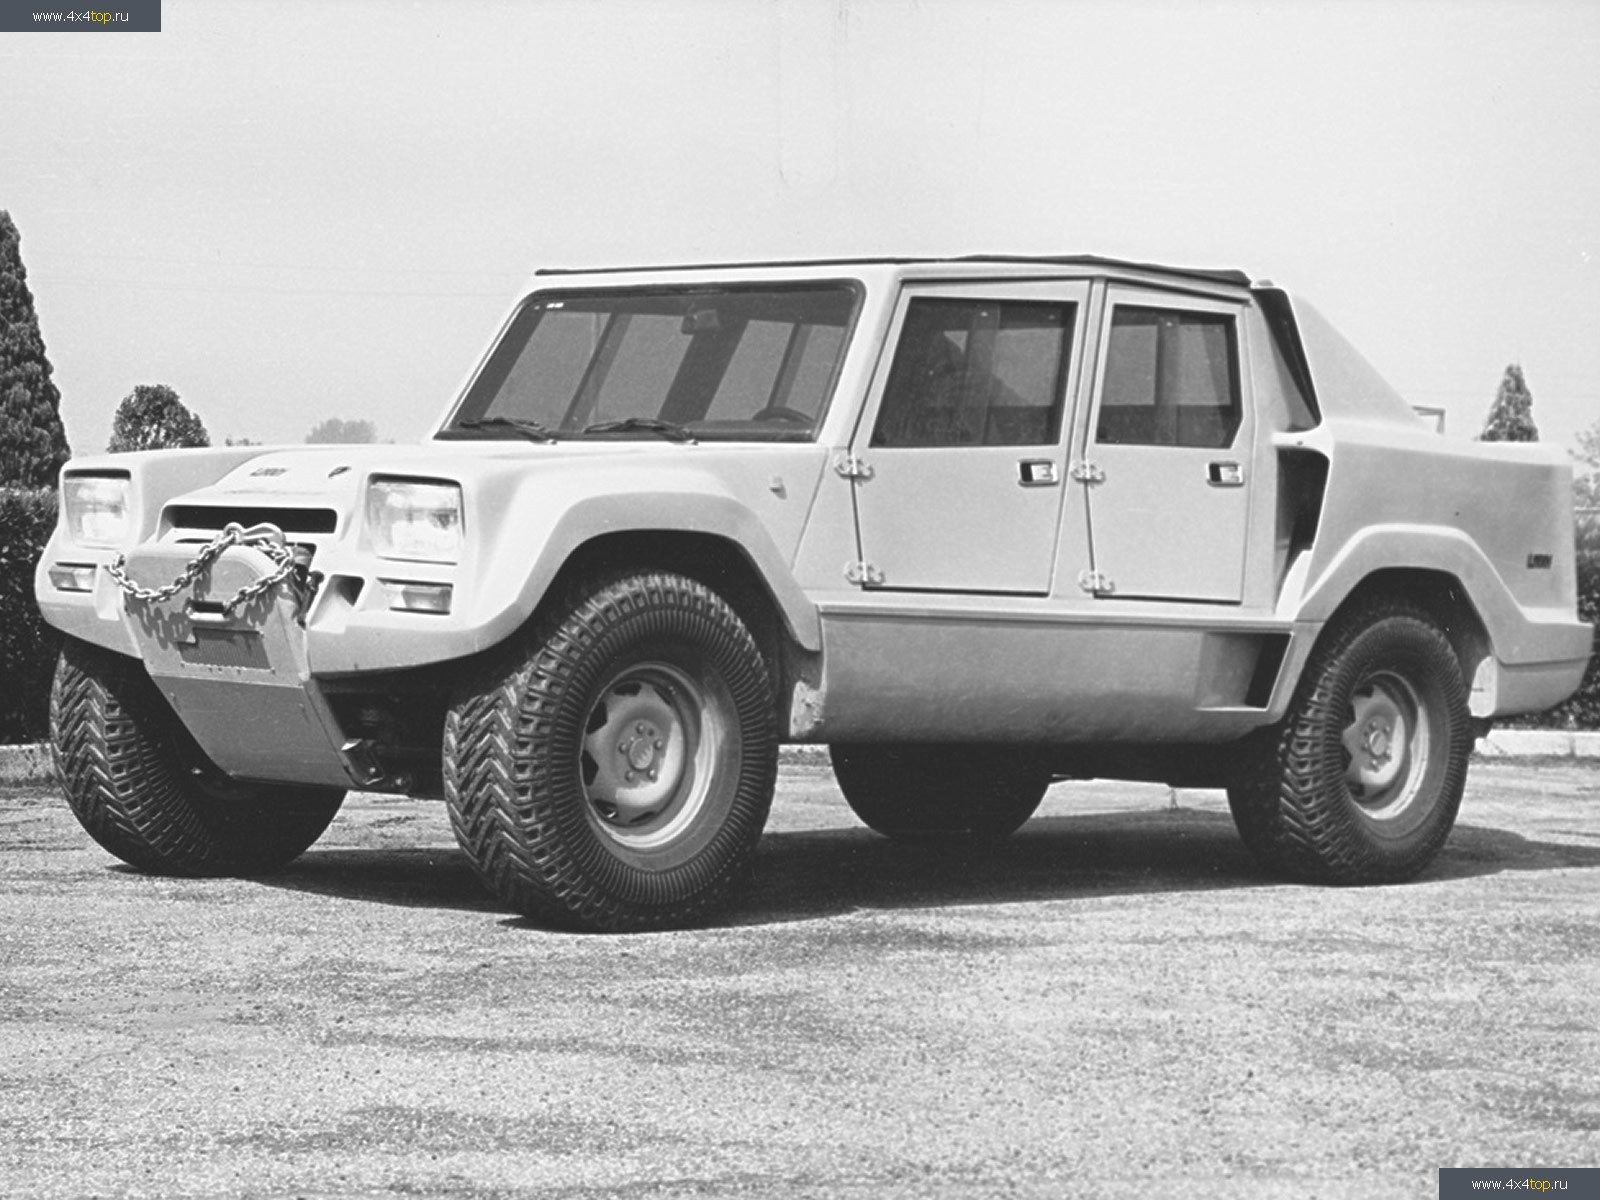 Lamborghini lm-001 photo - 2